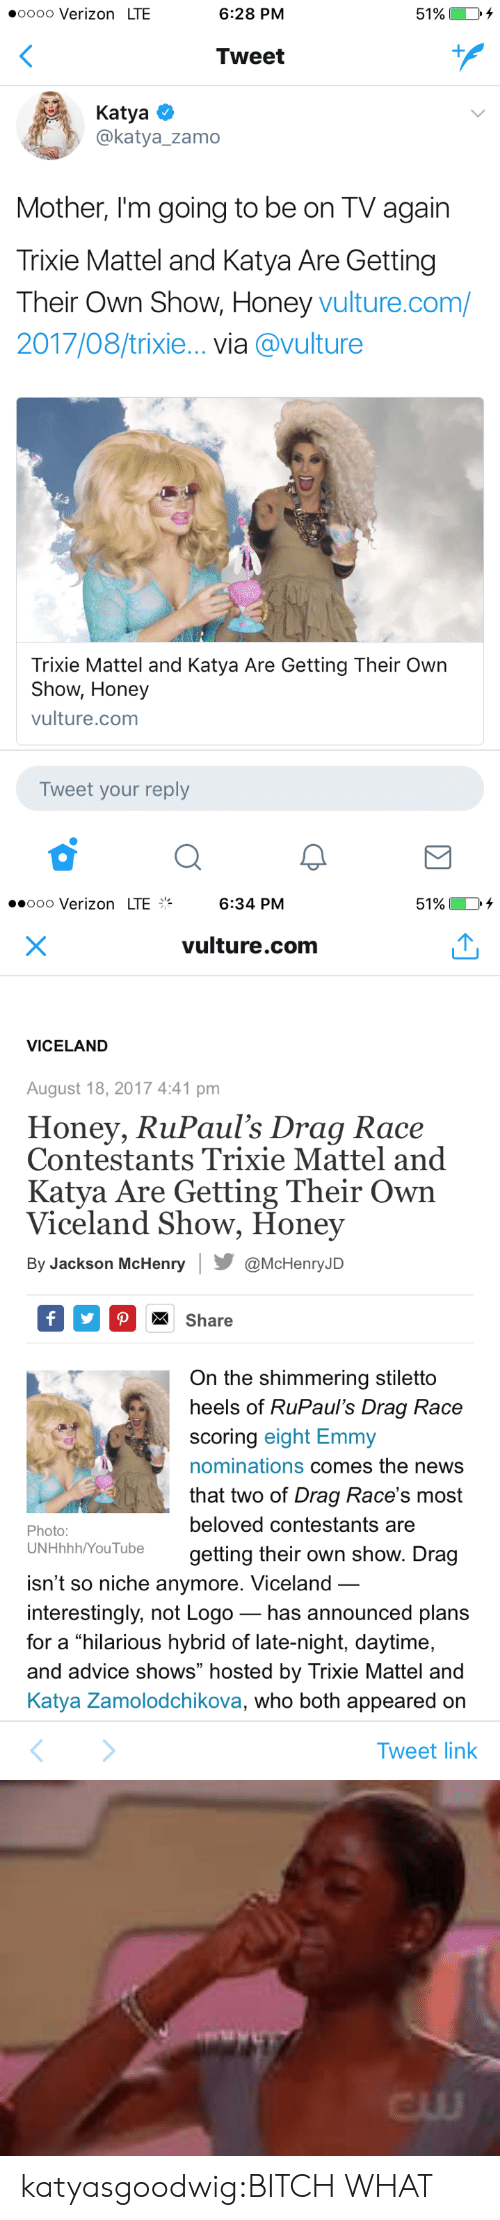 """Vulture: oooo Verizon LTE  6:28 PM  51%)  Tweet  Katya  @katya_zamo  Mother, I'm going to be on TV again  Trixie Mattel and Katya Are Gettingg  Their Own Show, Honey vulture.com/  2017/08/trixie... via @vulture  Trixie Mattel and Katya Are Getting Their Own  Show, Honey  vulture.com  Tweet your reply   ..ooo Verizon LTE%  6:34 PM  51%  vulture.com  VICELAND  August 18, 2017 4:41 pm  Honey, RuPaul's Drag Race  Contestants Trixie Mattel and  Katya Are Getting Their Own  Viceland Show, Honey  By Jackson McHenry@McHenryJD  Share  On the shimmering stiletto  heels of RuPaul's Draq Race  scoring eight Emmy  nominations comes the news  that two of Drag Race's most  beloved contestants are  getting their own show. Drag  Photo:  UNHhhh/YouTube  isn't so niche anymore. Viceland  interestingly, not Logo_ has announced plans  for a hilarious hybrid of late-night, daytime,  and advice shows"""" hosted by Trixie Mattel and  Katya Zamolodchikova, who both appeared on  Tweet link   cw katyasgoodwig:BITCH WHAT"""